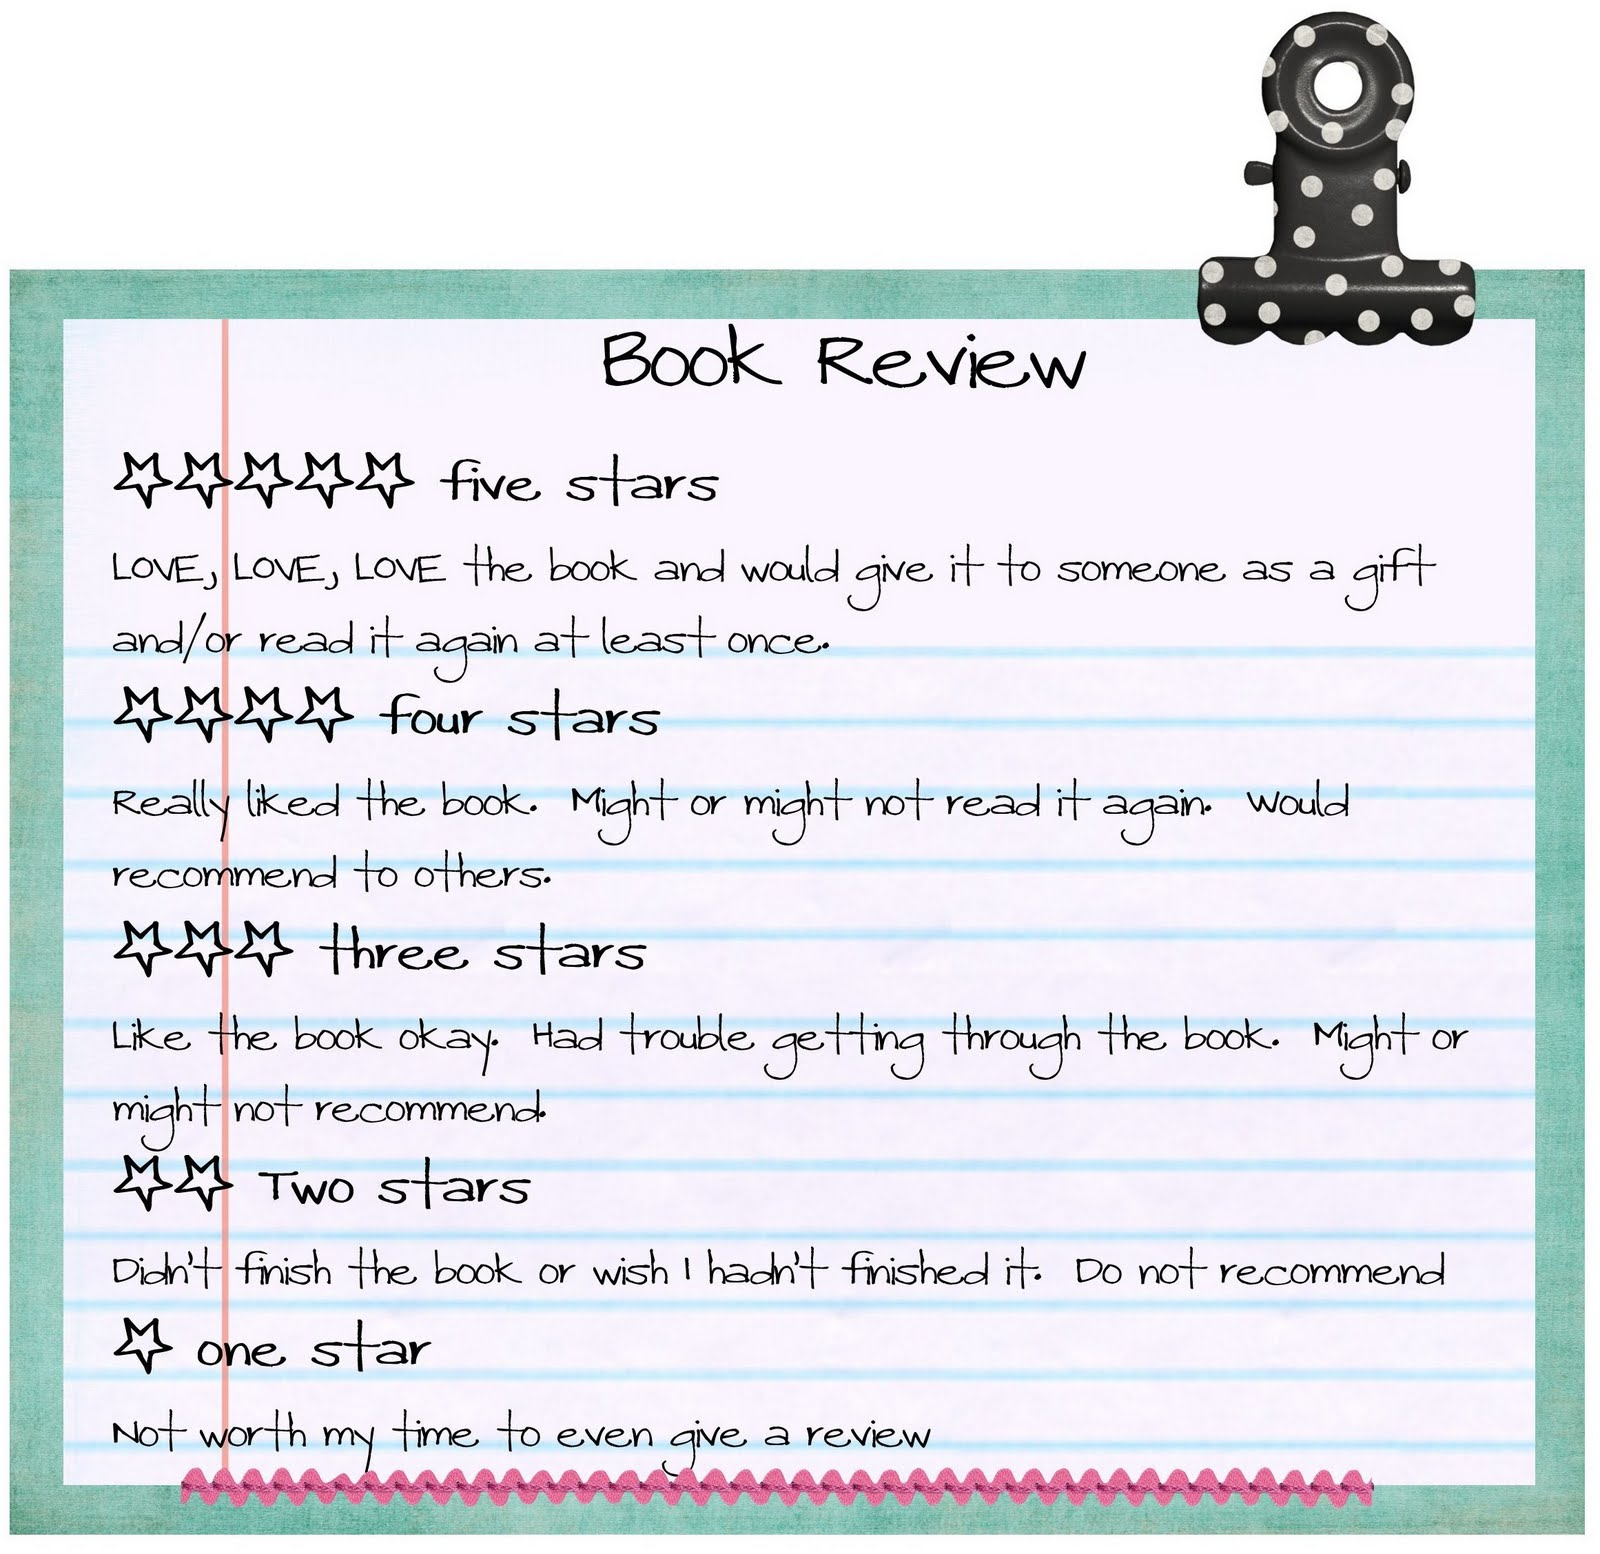 Book Report Form And Reading Log Printables AppTiled Com Unique App Finder  Engine Latest Reviews Market  Printable Book Report Forms